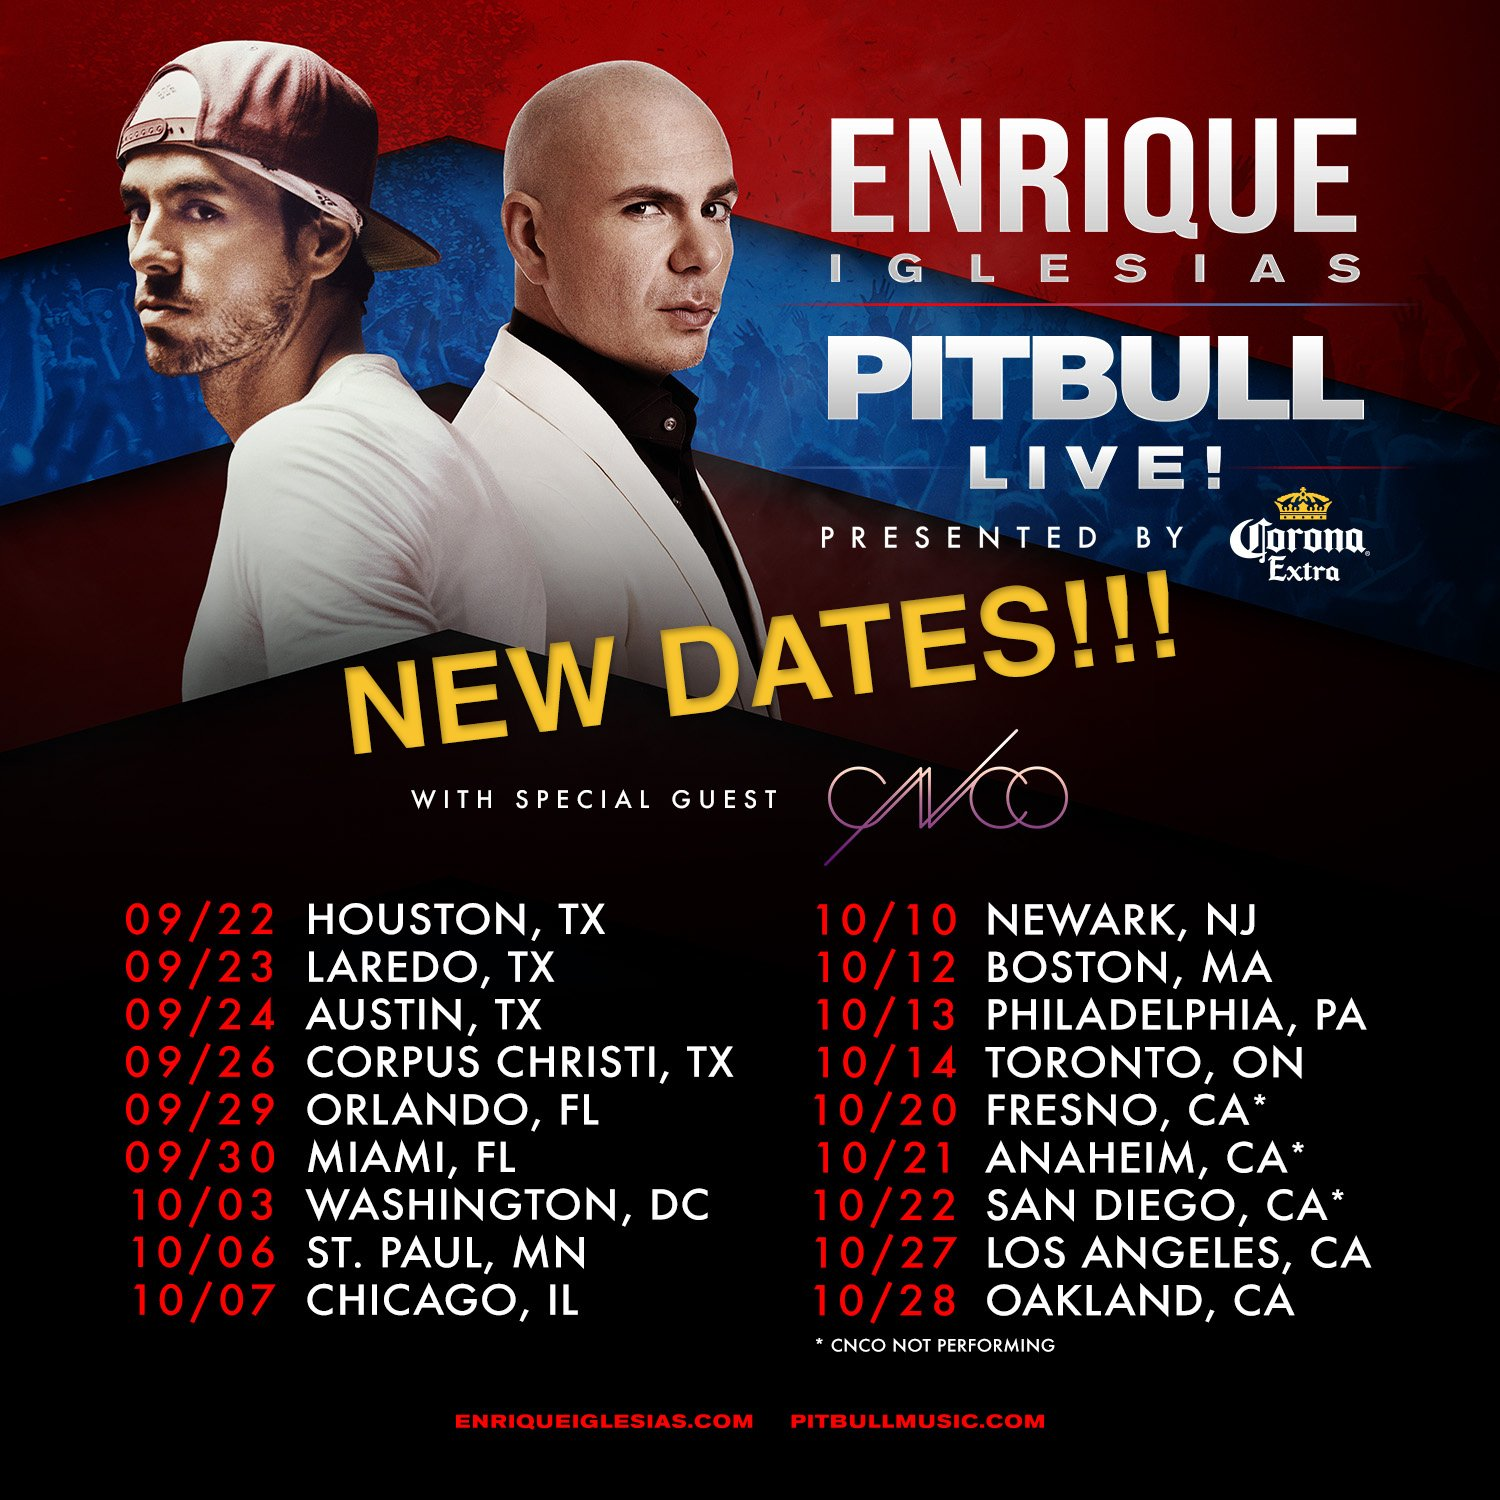 Ticket are on sale NOW for all dates of #EnriquePitbullTour.  Don't miss it: https://t.co/YfyhIIGvOO https://t.co/9BkSpiv8fJ